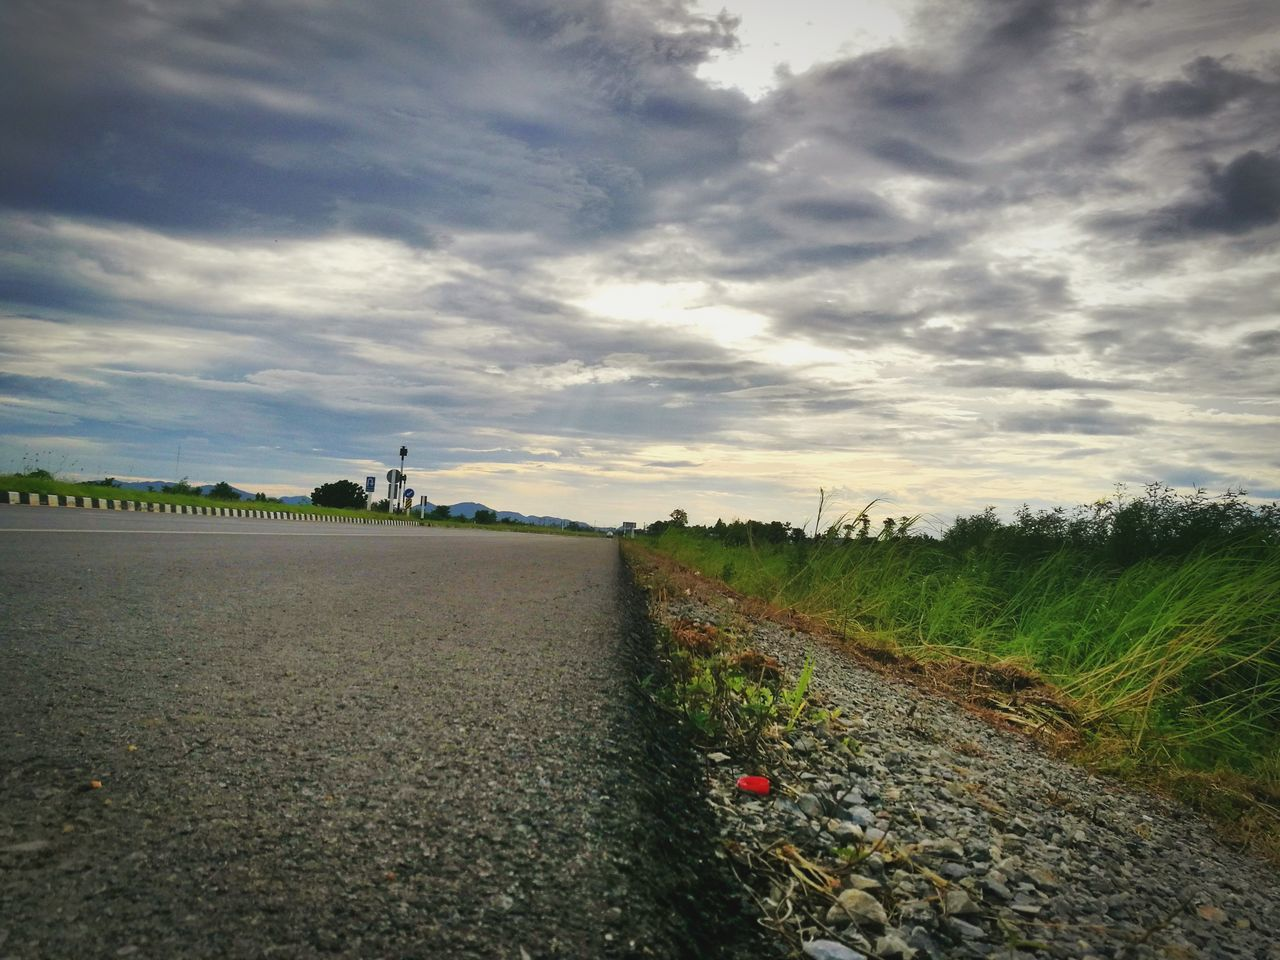 road, the way forward, sky, cloud - sky, landscape, grass, no people, field, day, transportation, tranquil scene, tranquility, nature, outdoors, scenics, rural scene, beauty in nature